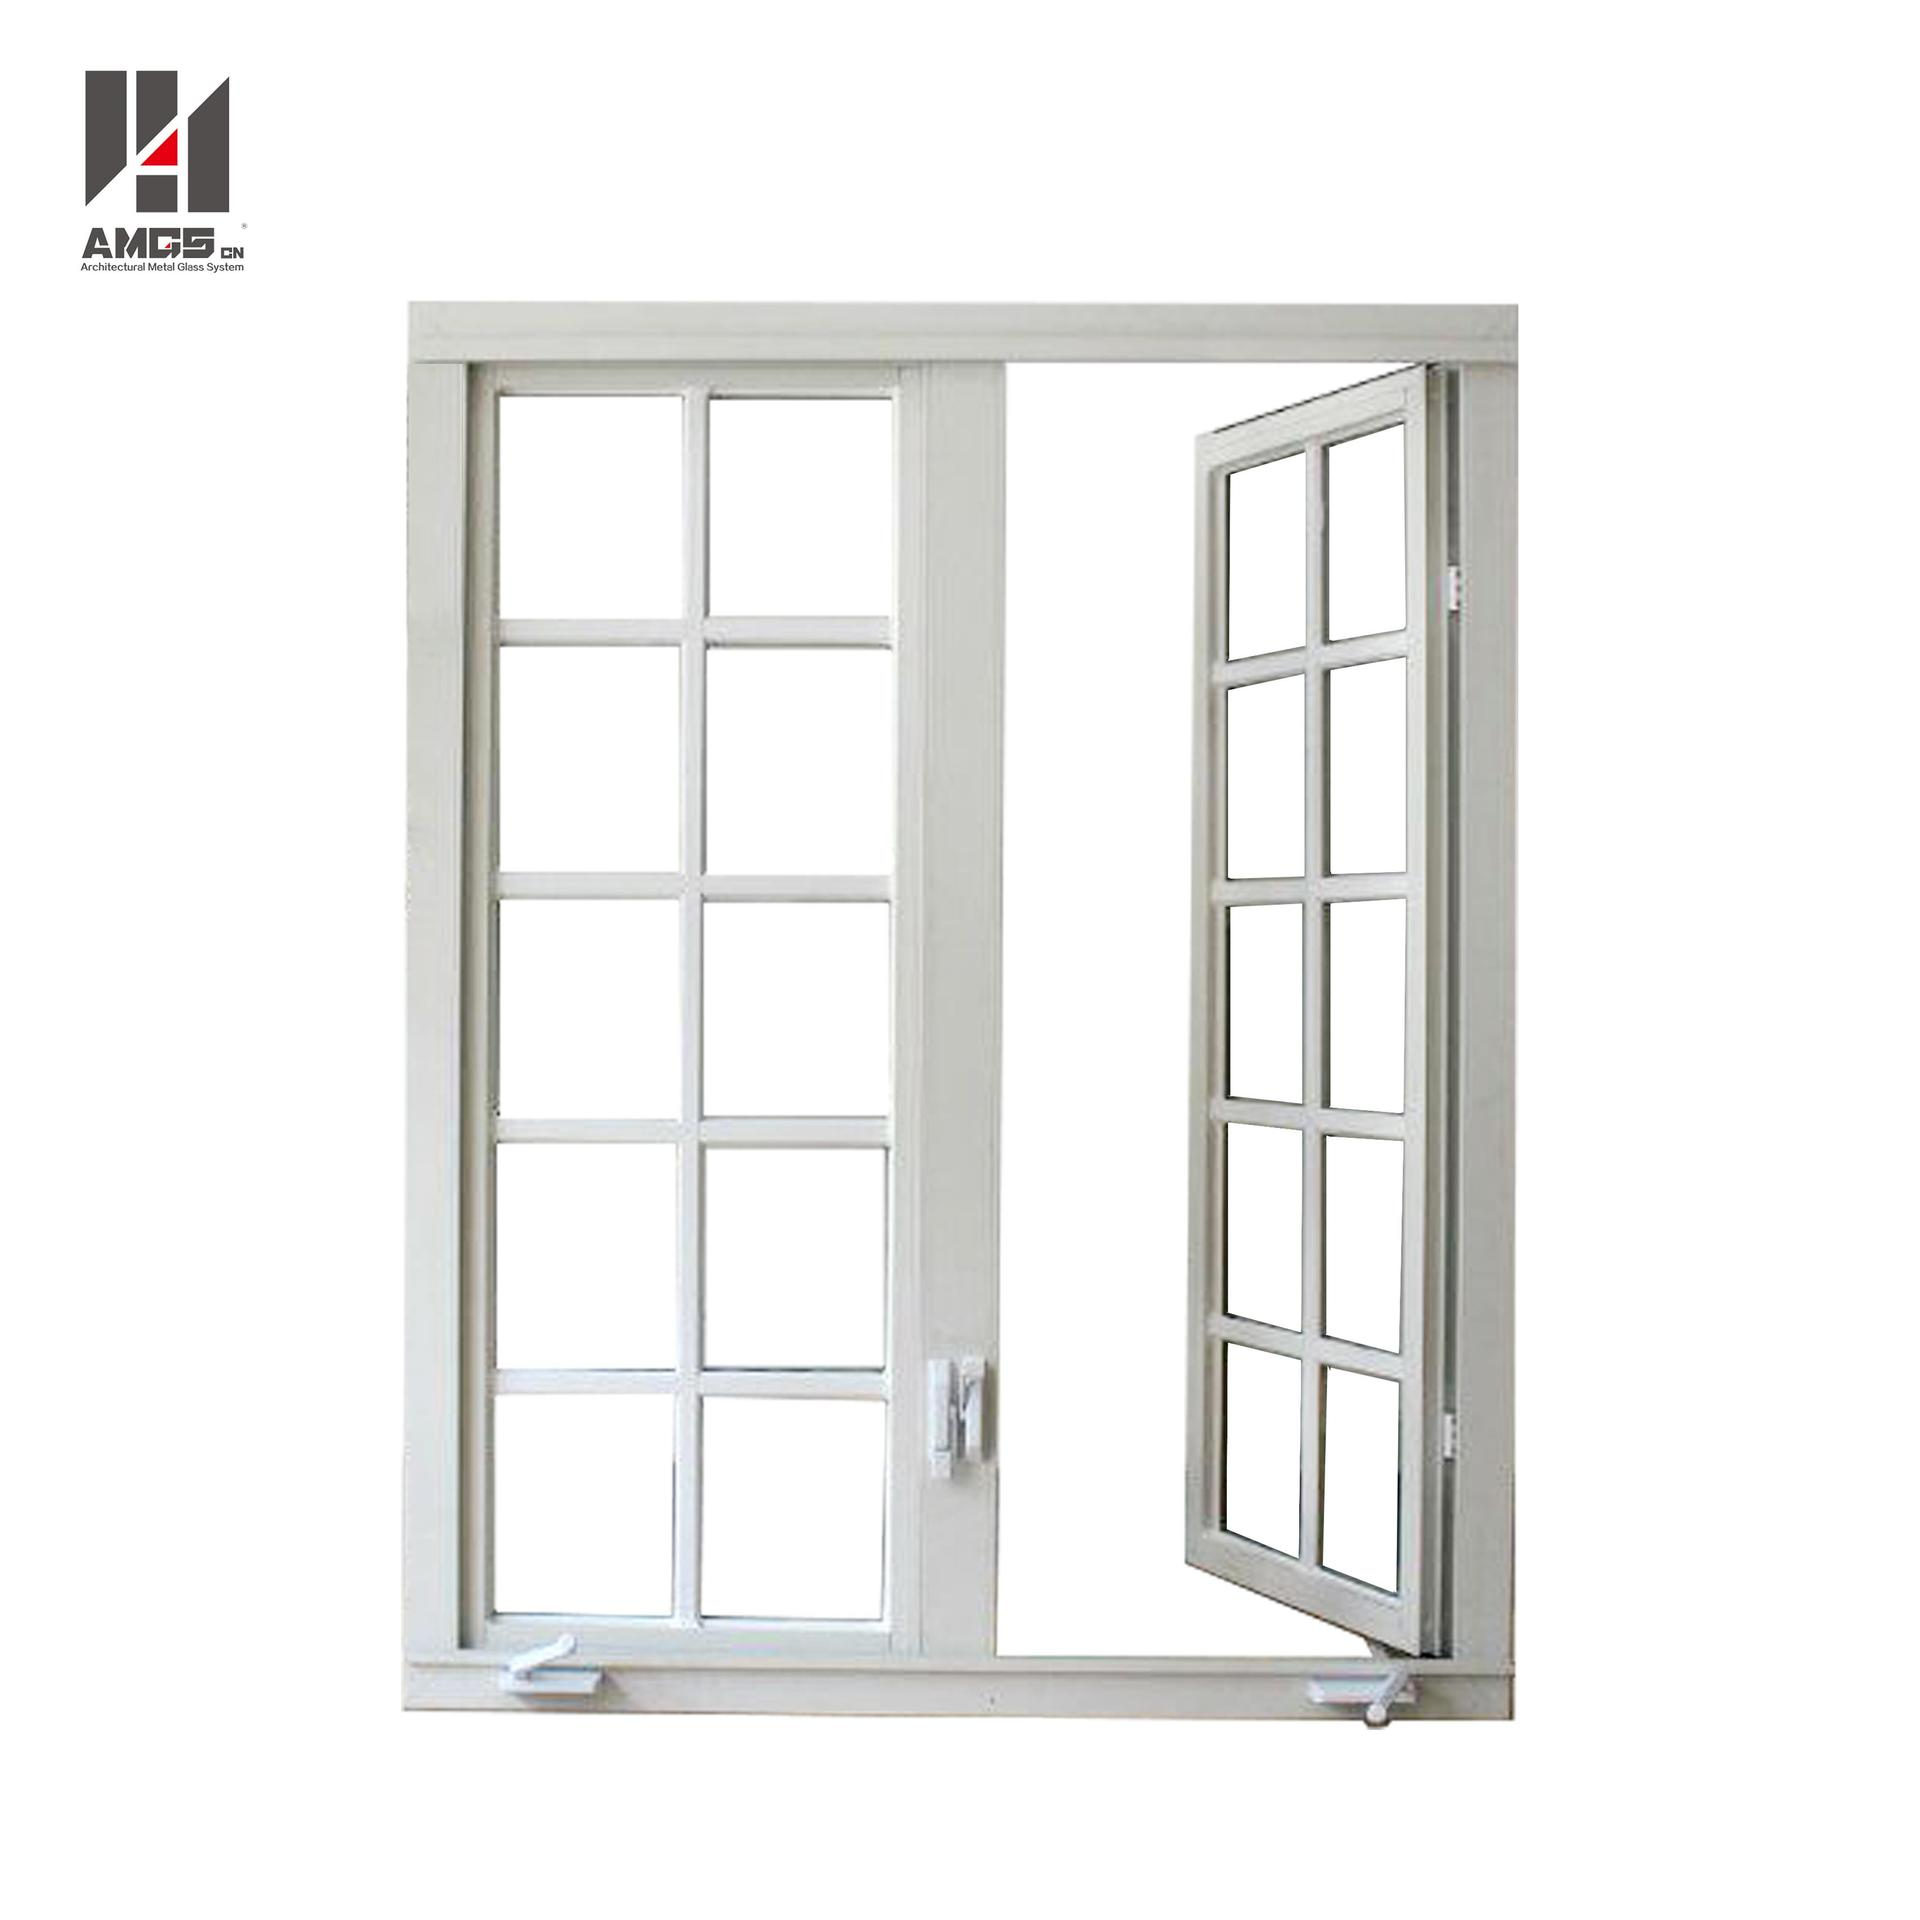 American Grille Design Casement Aluminium Crank Windows With Tempered Glass